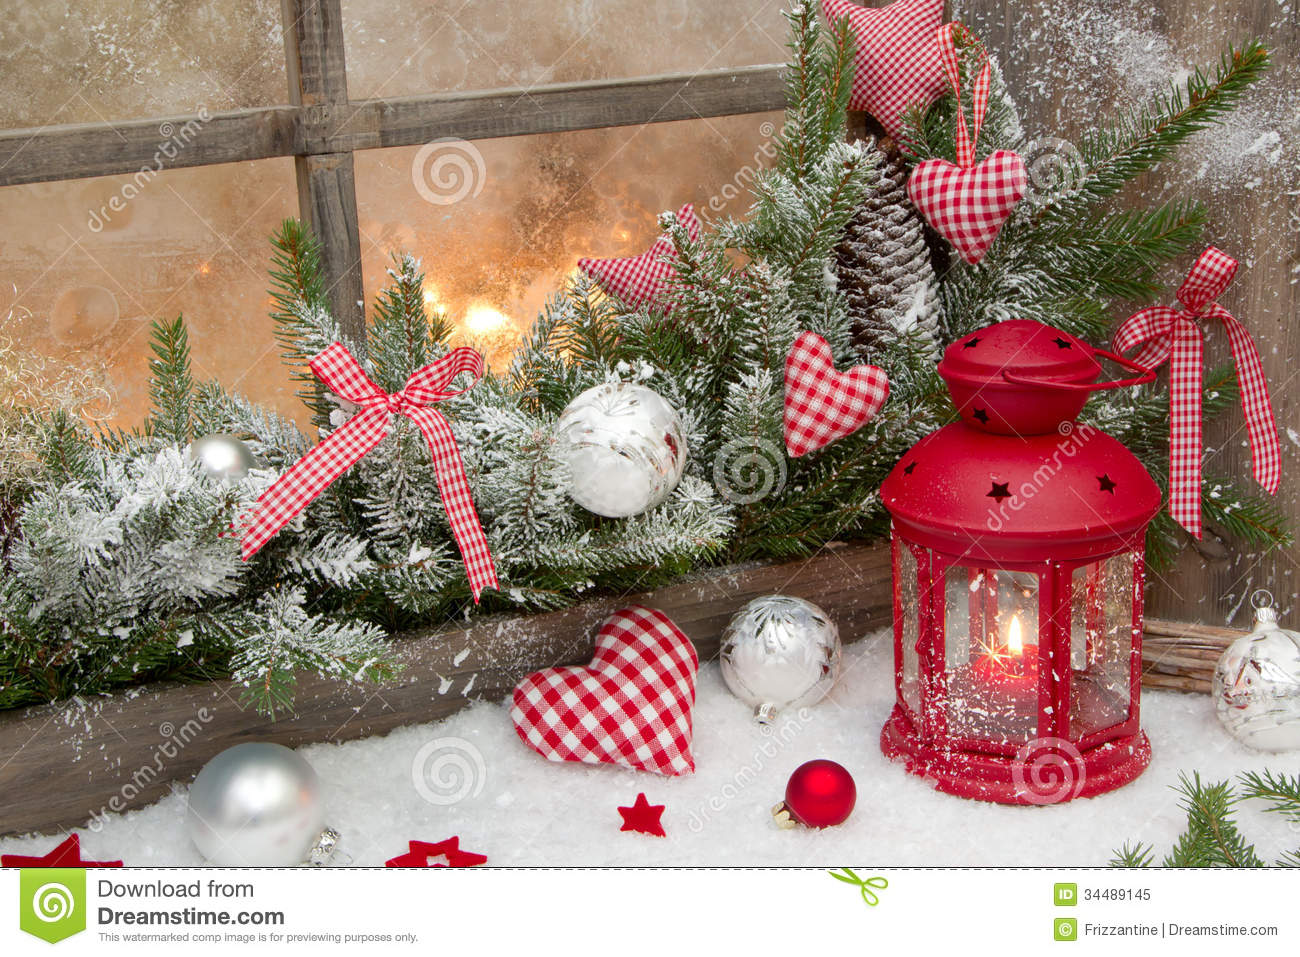 ... christmas decoration on window sill with red checked hearts in country: www.dreamstime.com/royalty-free-stock-photo-red-rustic-christmas...